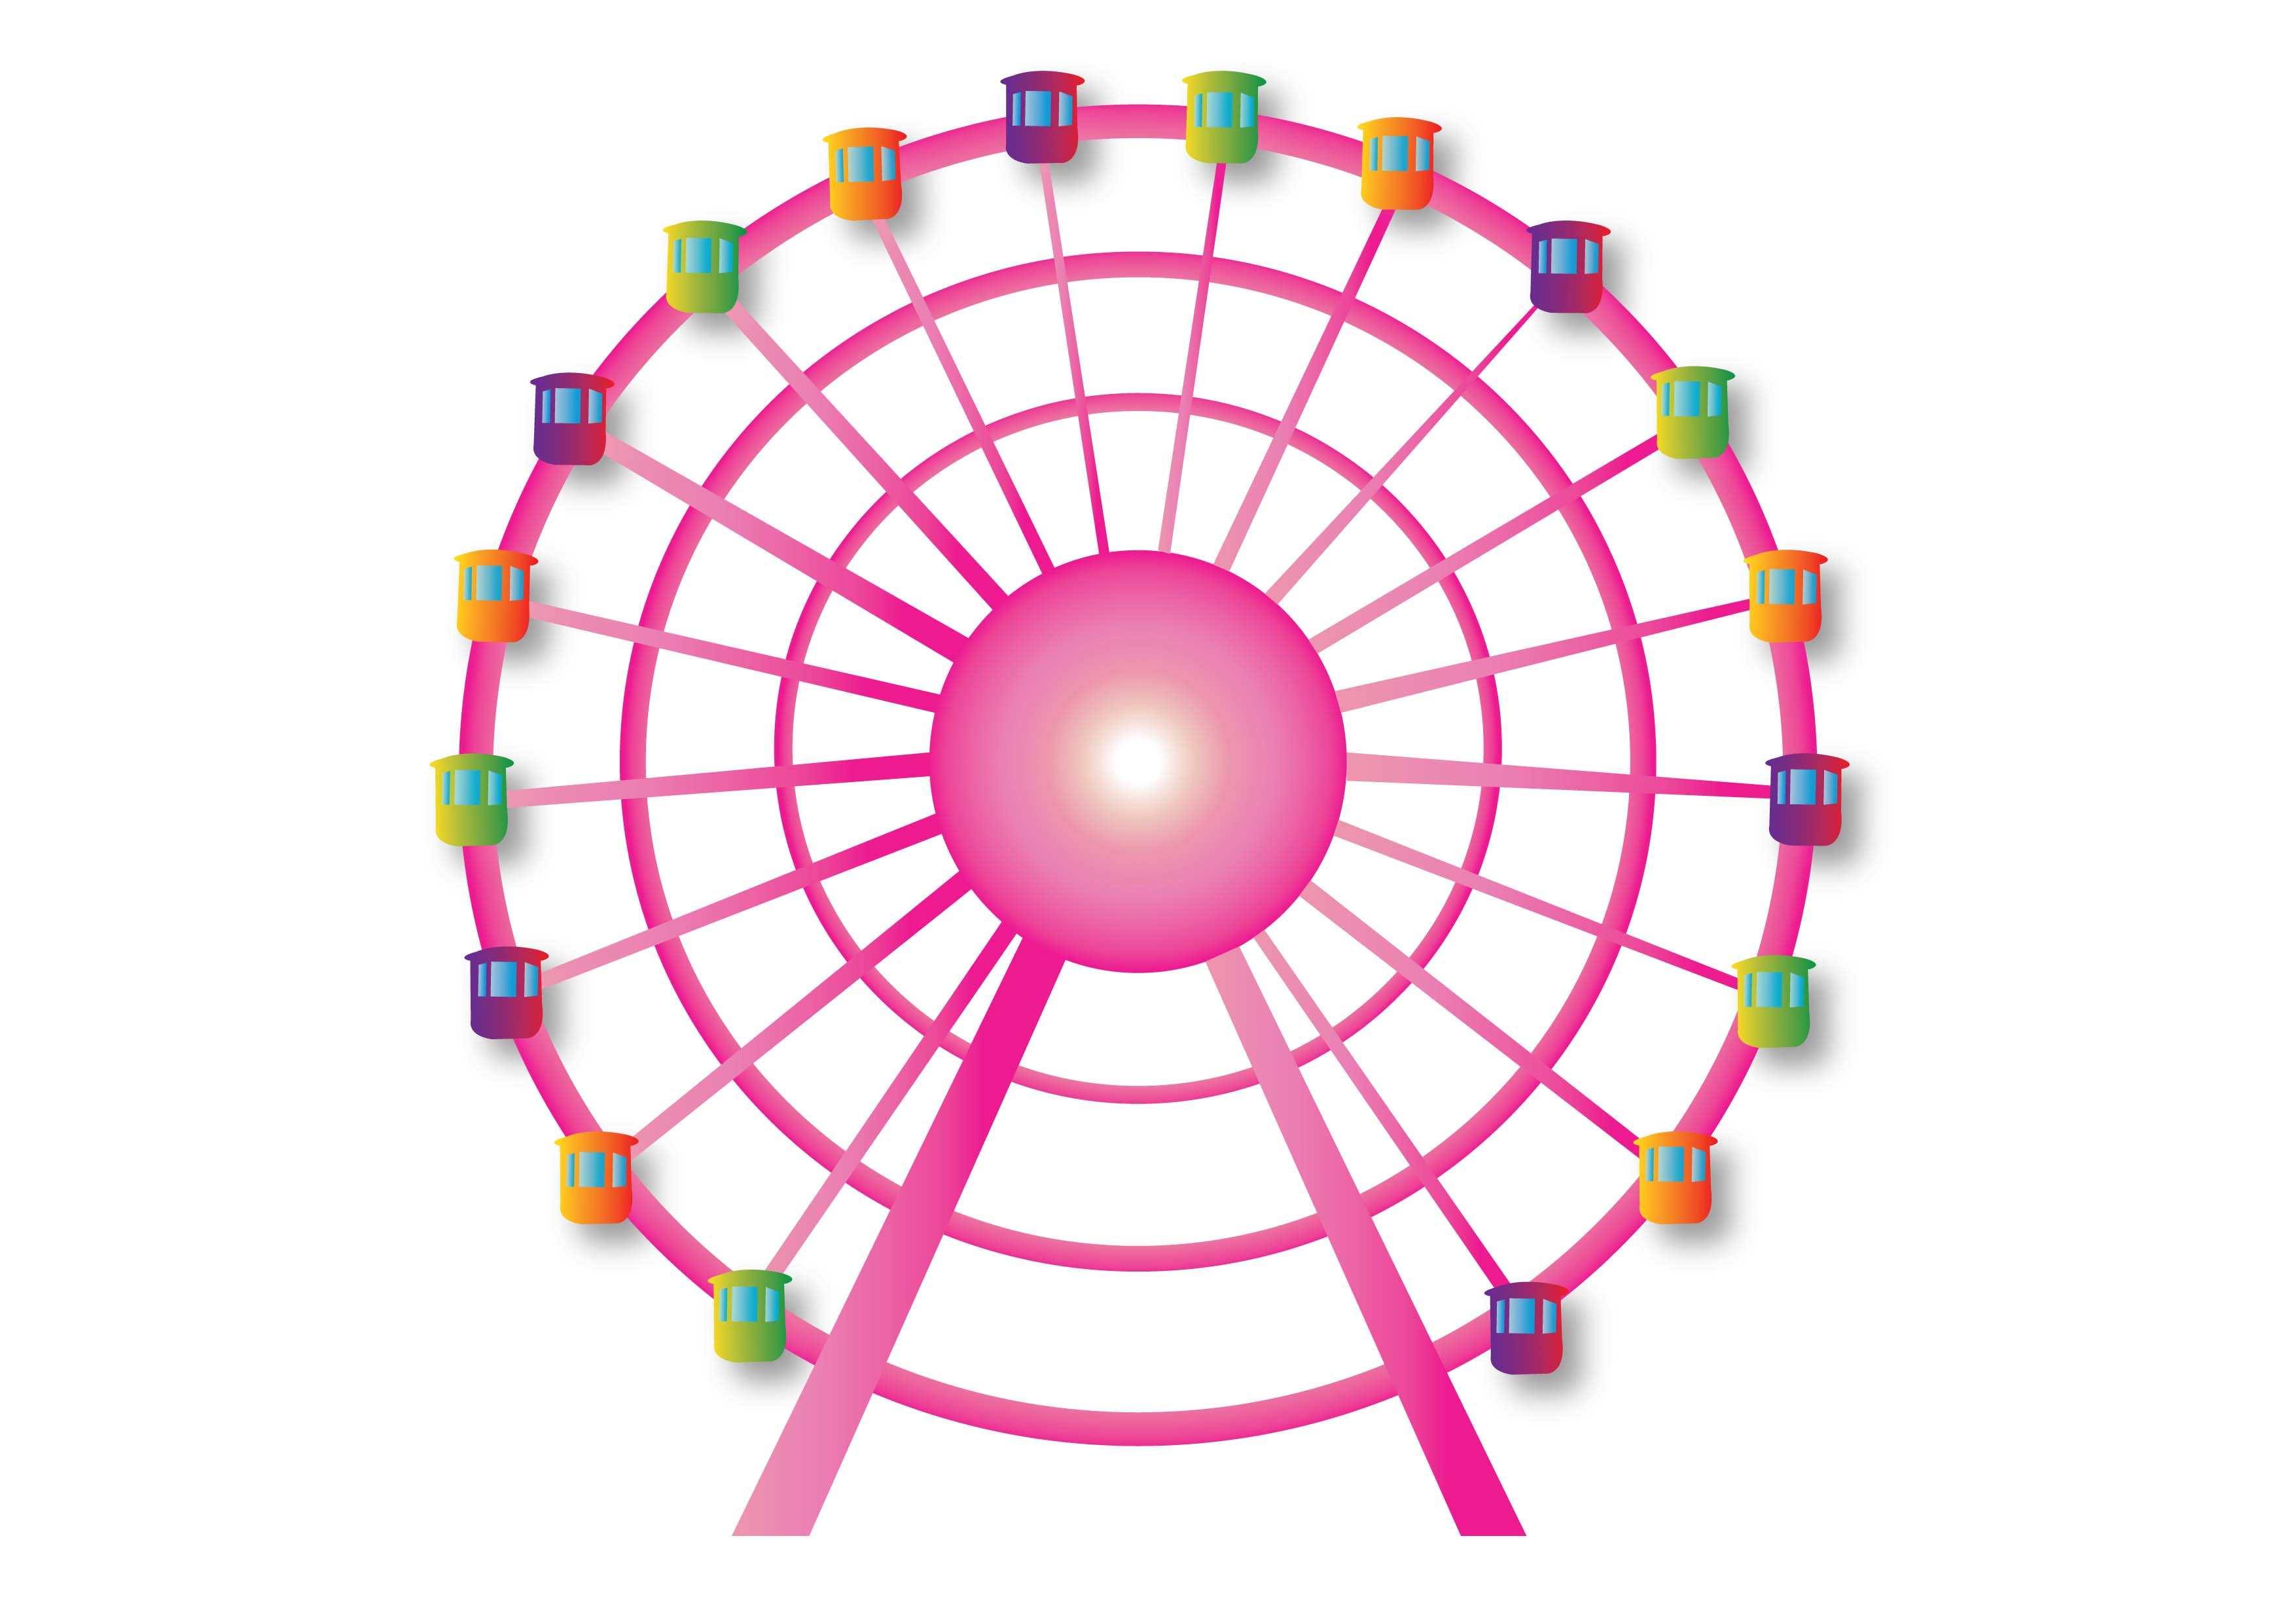 animated ferris wheel clipart - Clipground